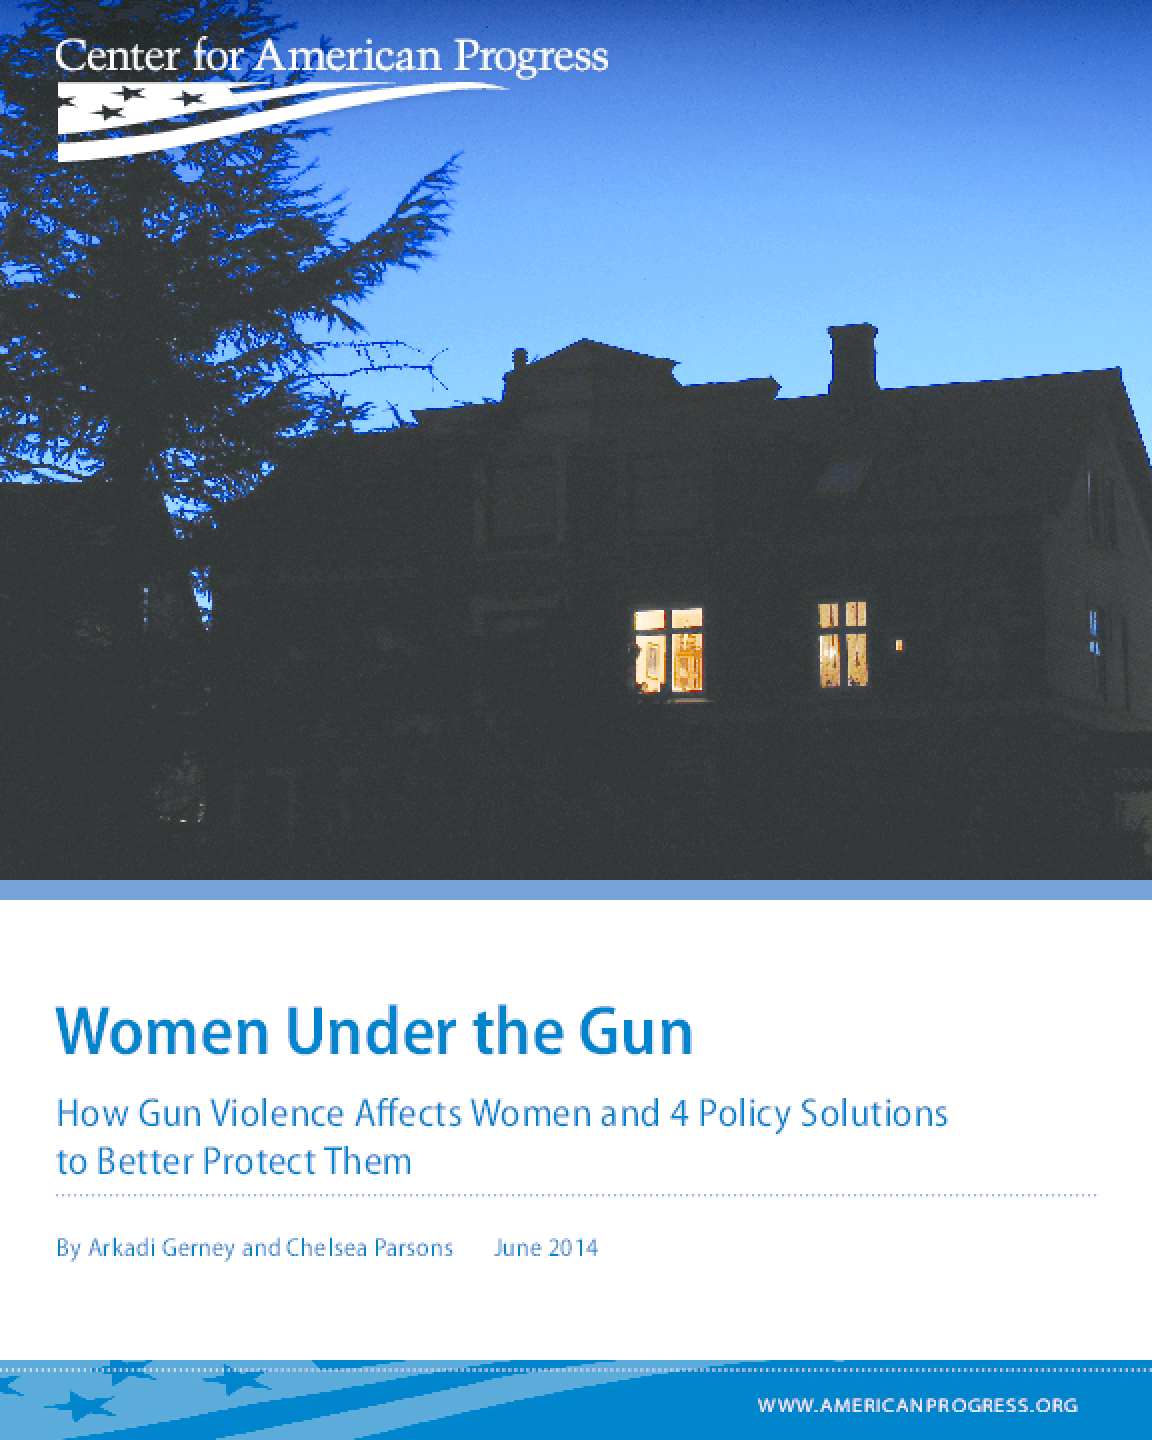 Women Under the Gun: How Gun Violence Affects Women and 4 Policy Solutions to Better Protect Them